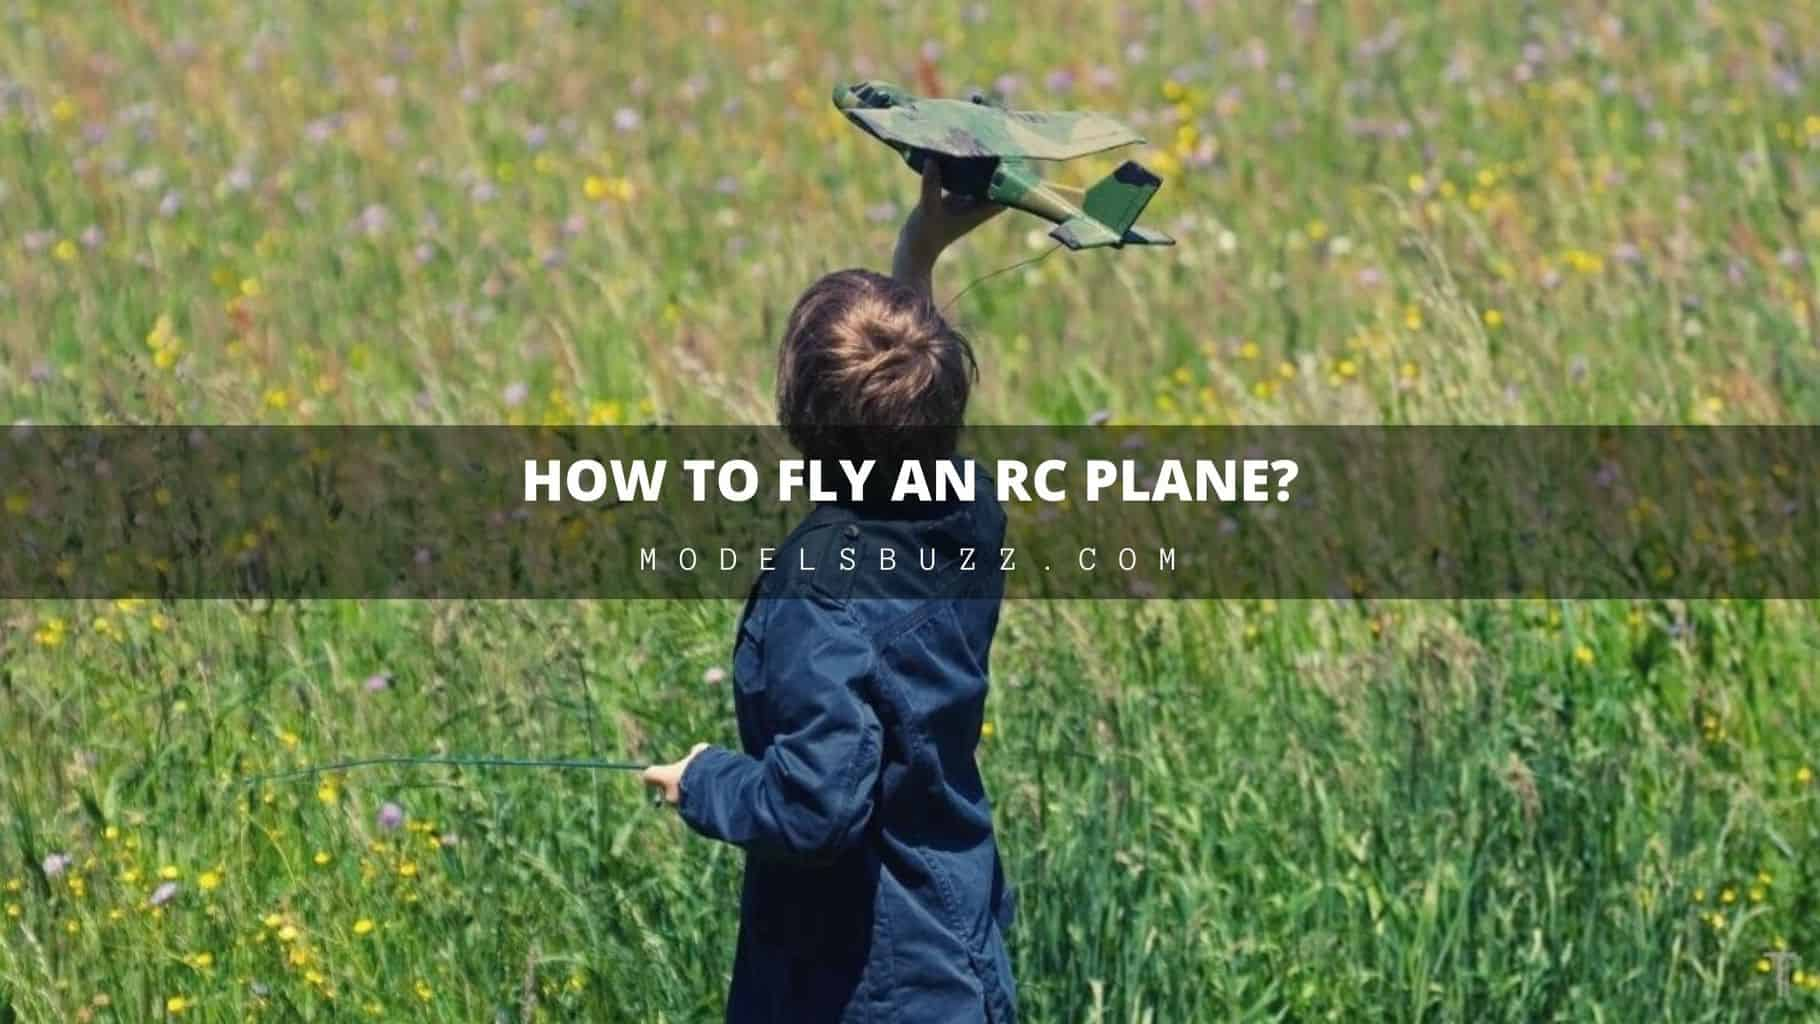 How To Fly an RC Plane